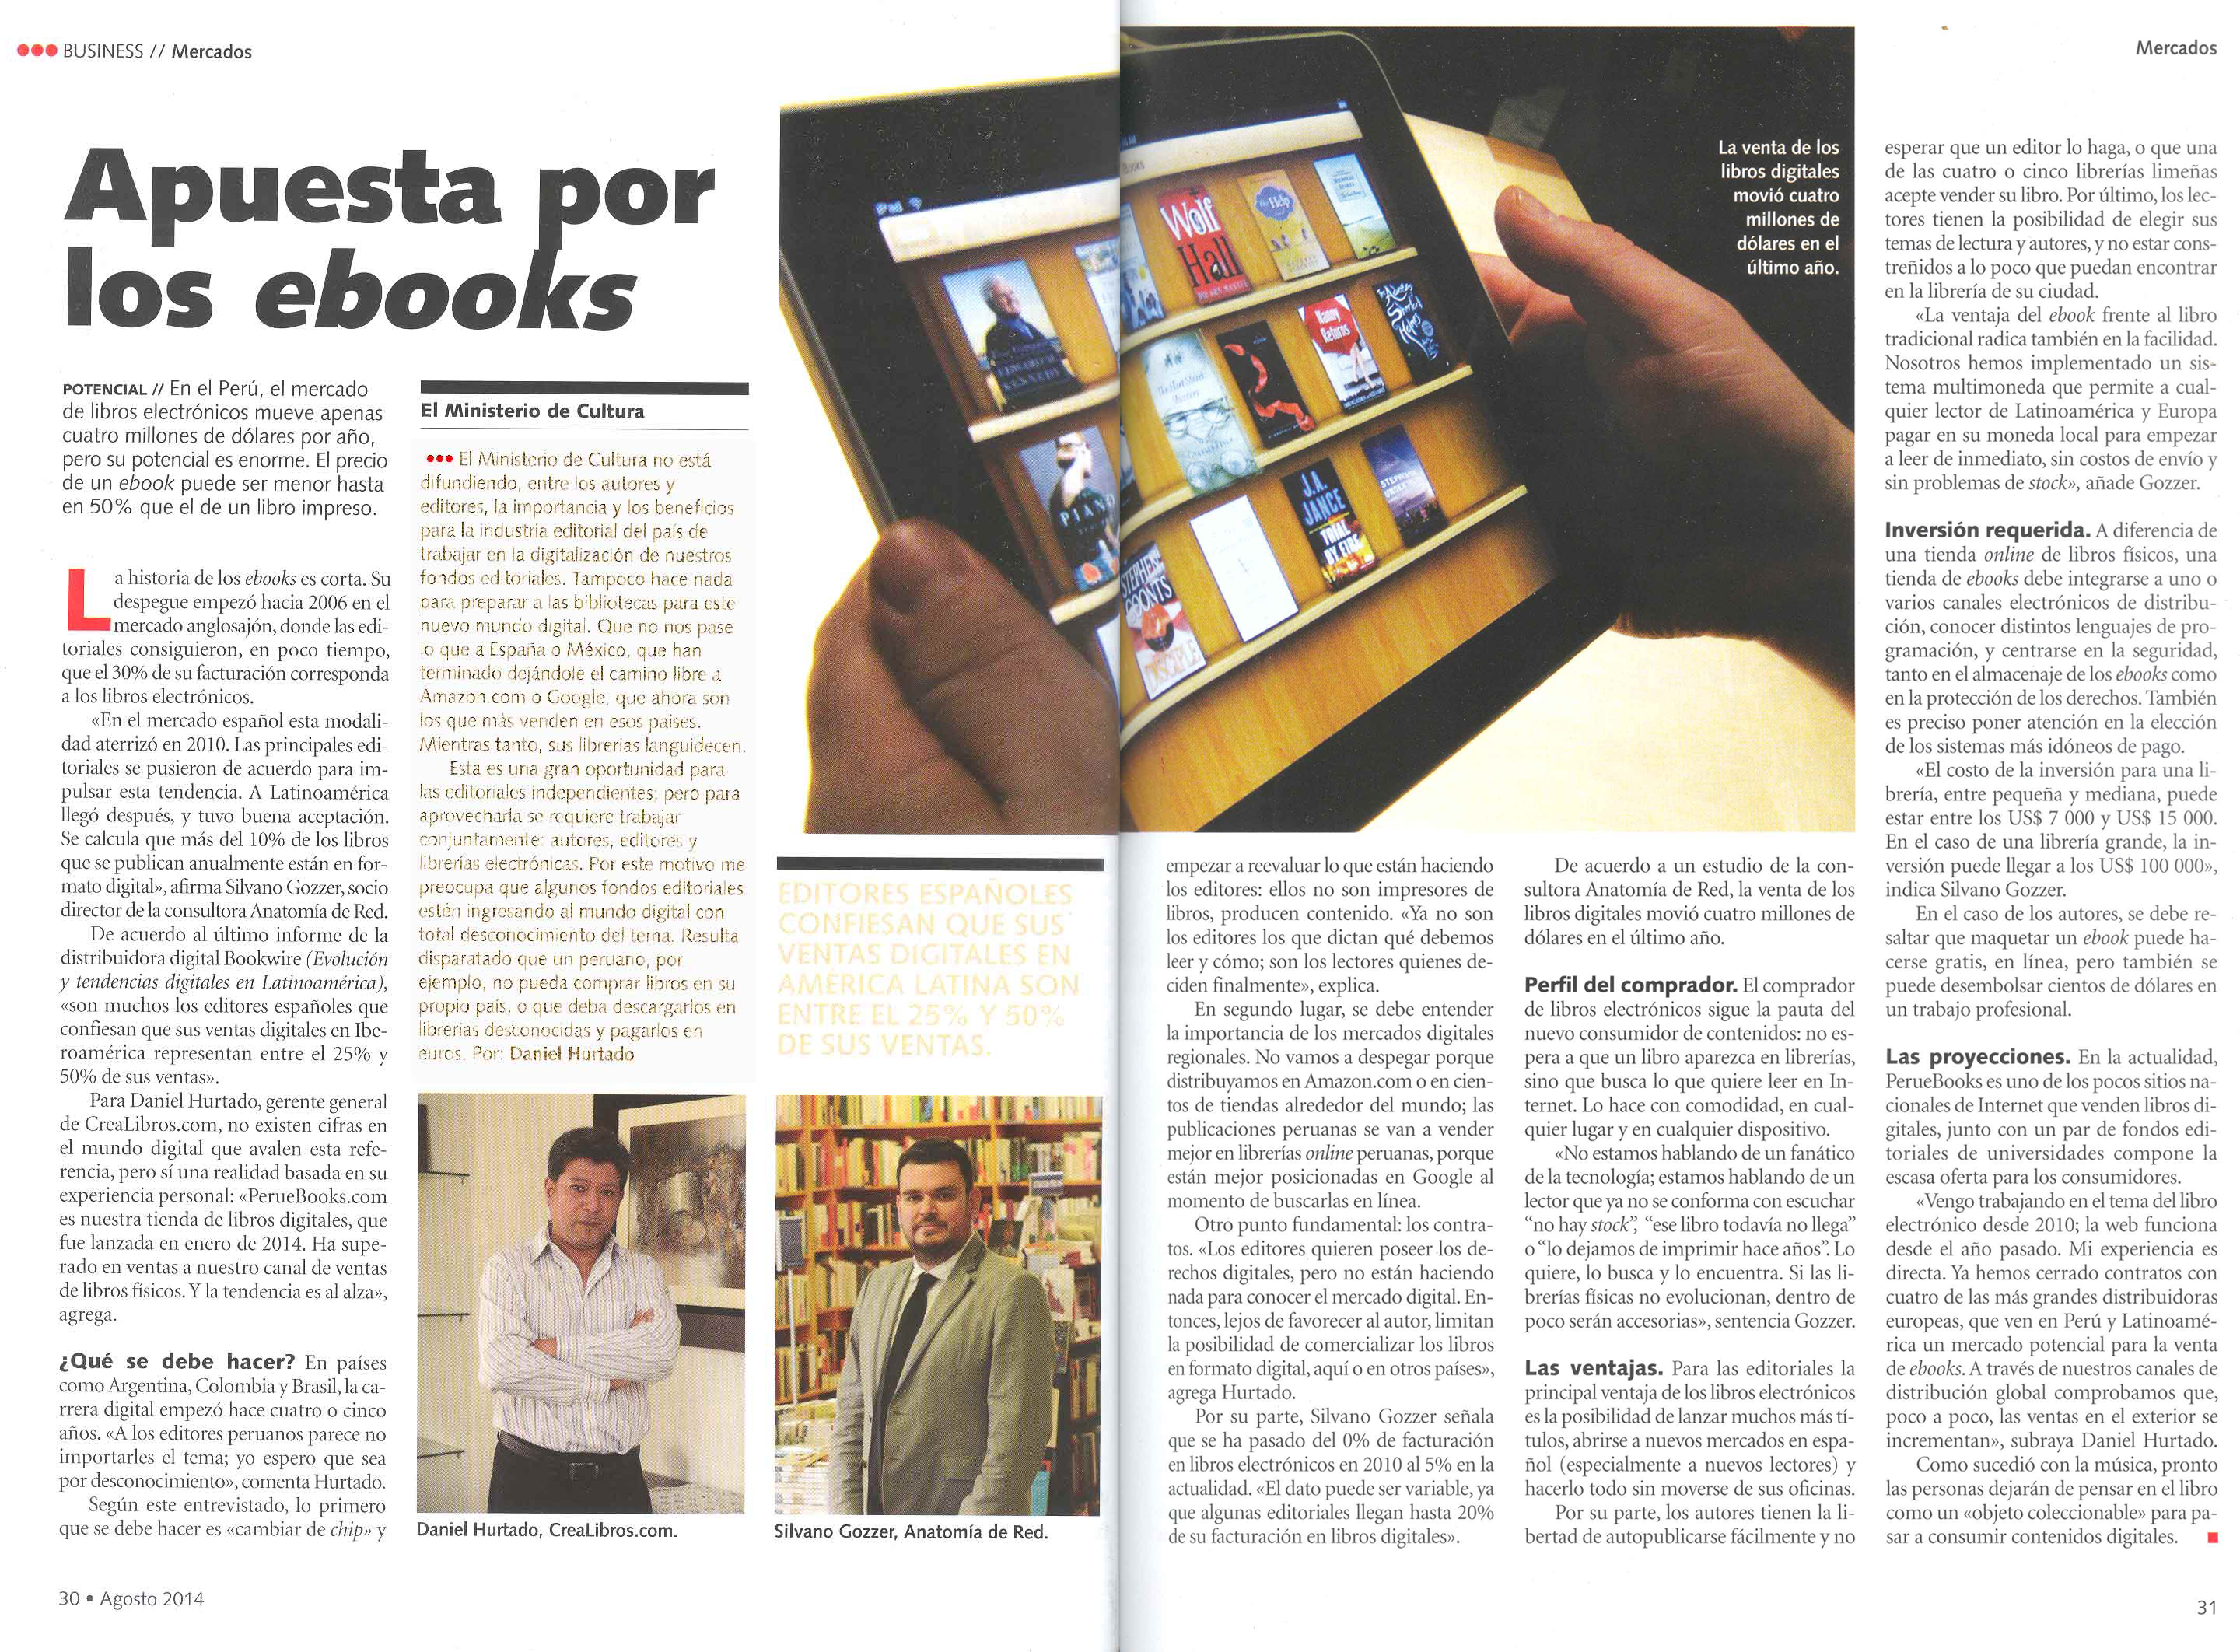 Venta De Libros Digitales Revista Business